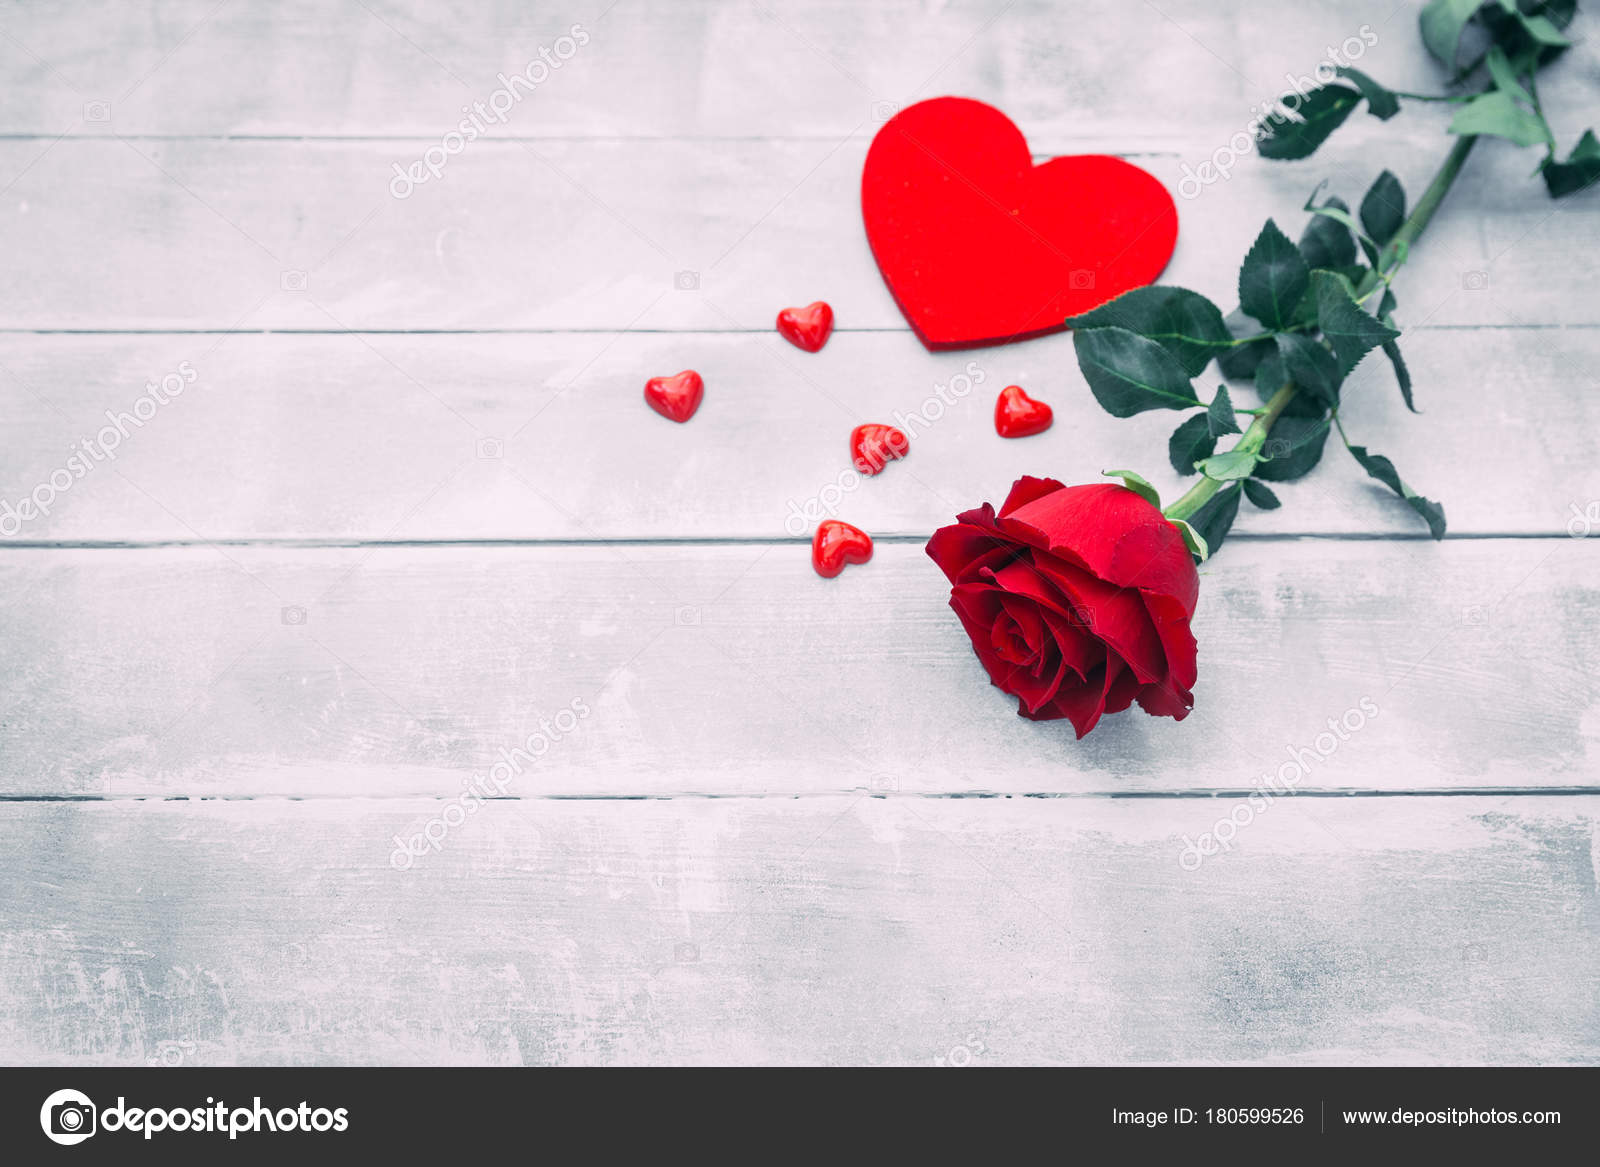 Red Rose Hearts Wooden Background Valentines Day Concept Stock